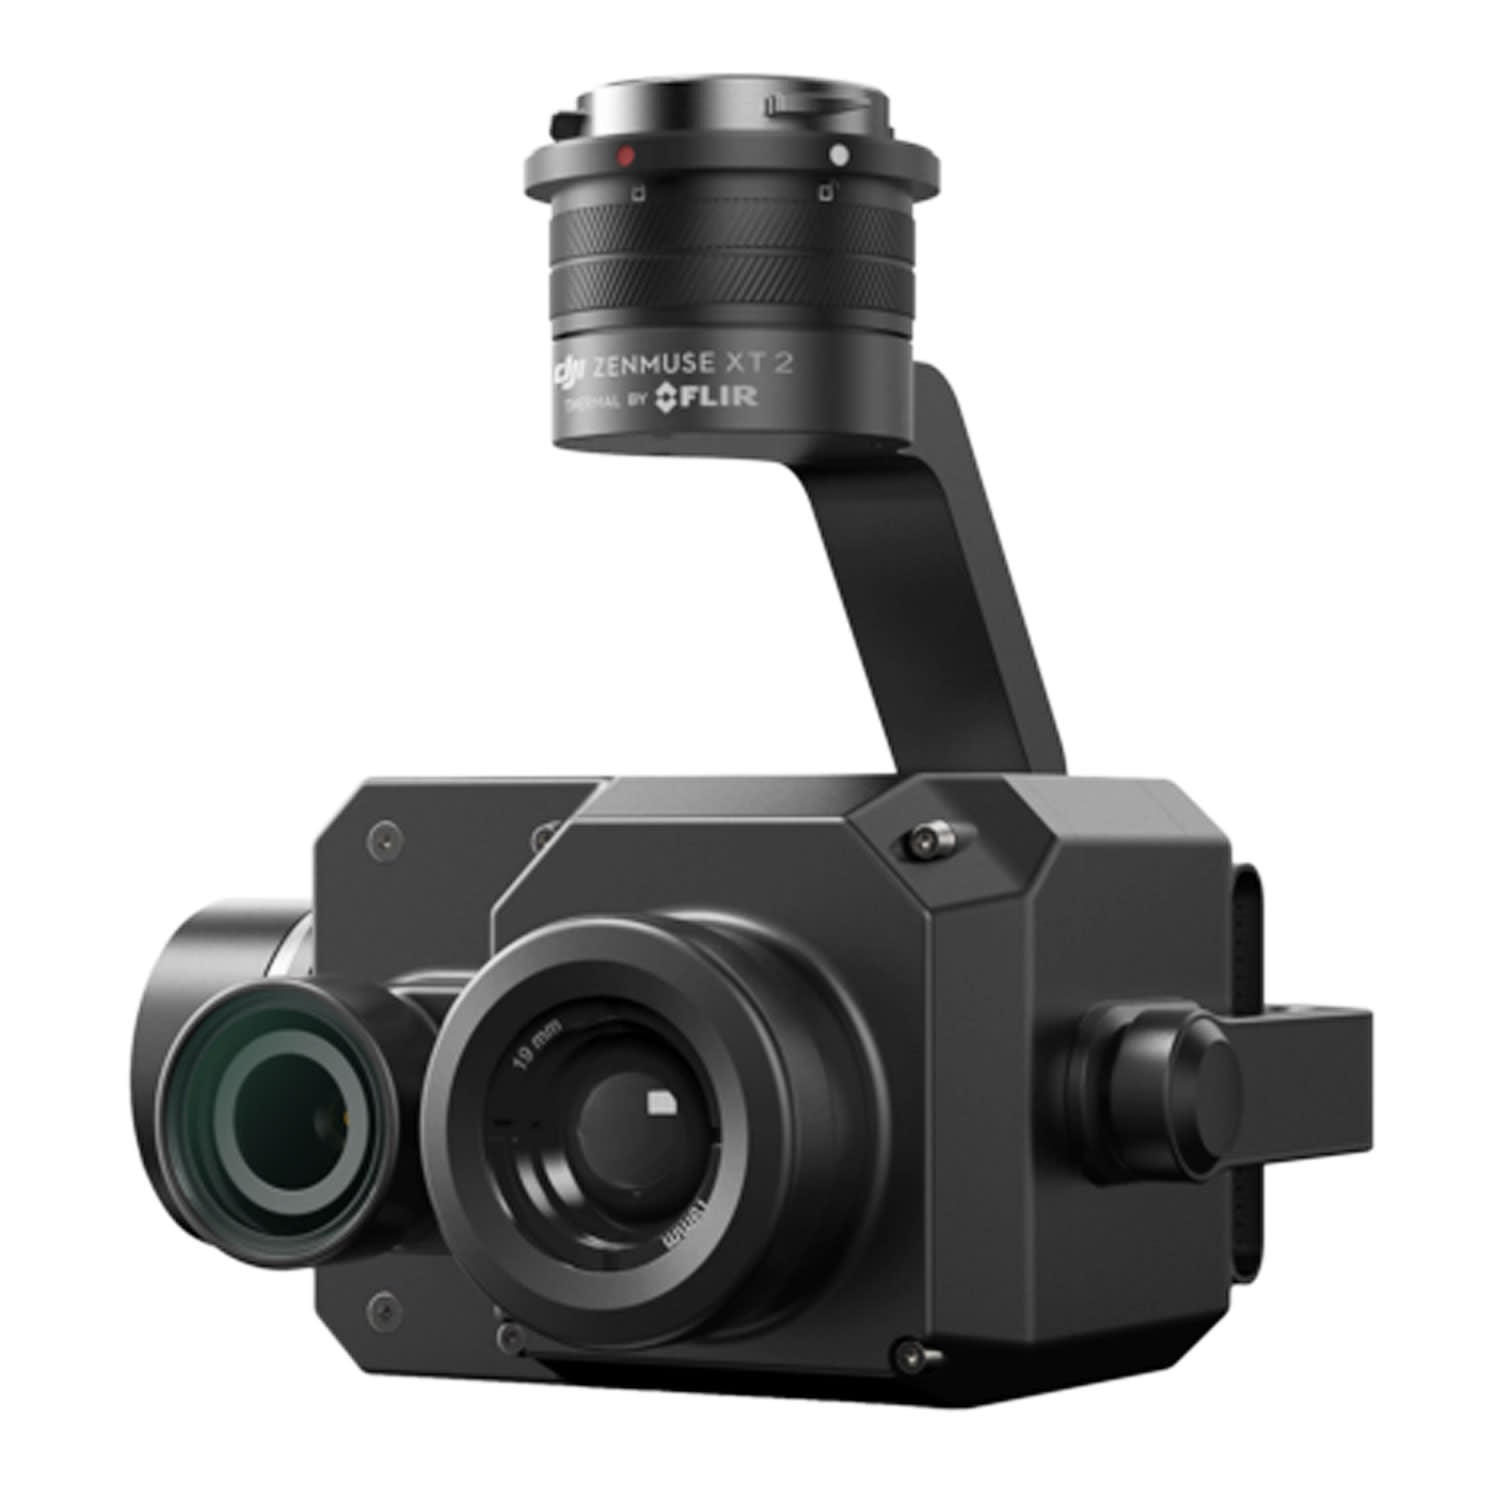 DJI Zenmuse XT2 Dual 4K/FLIR Thermal Camera